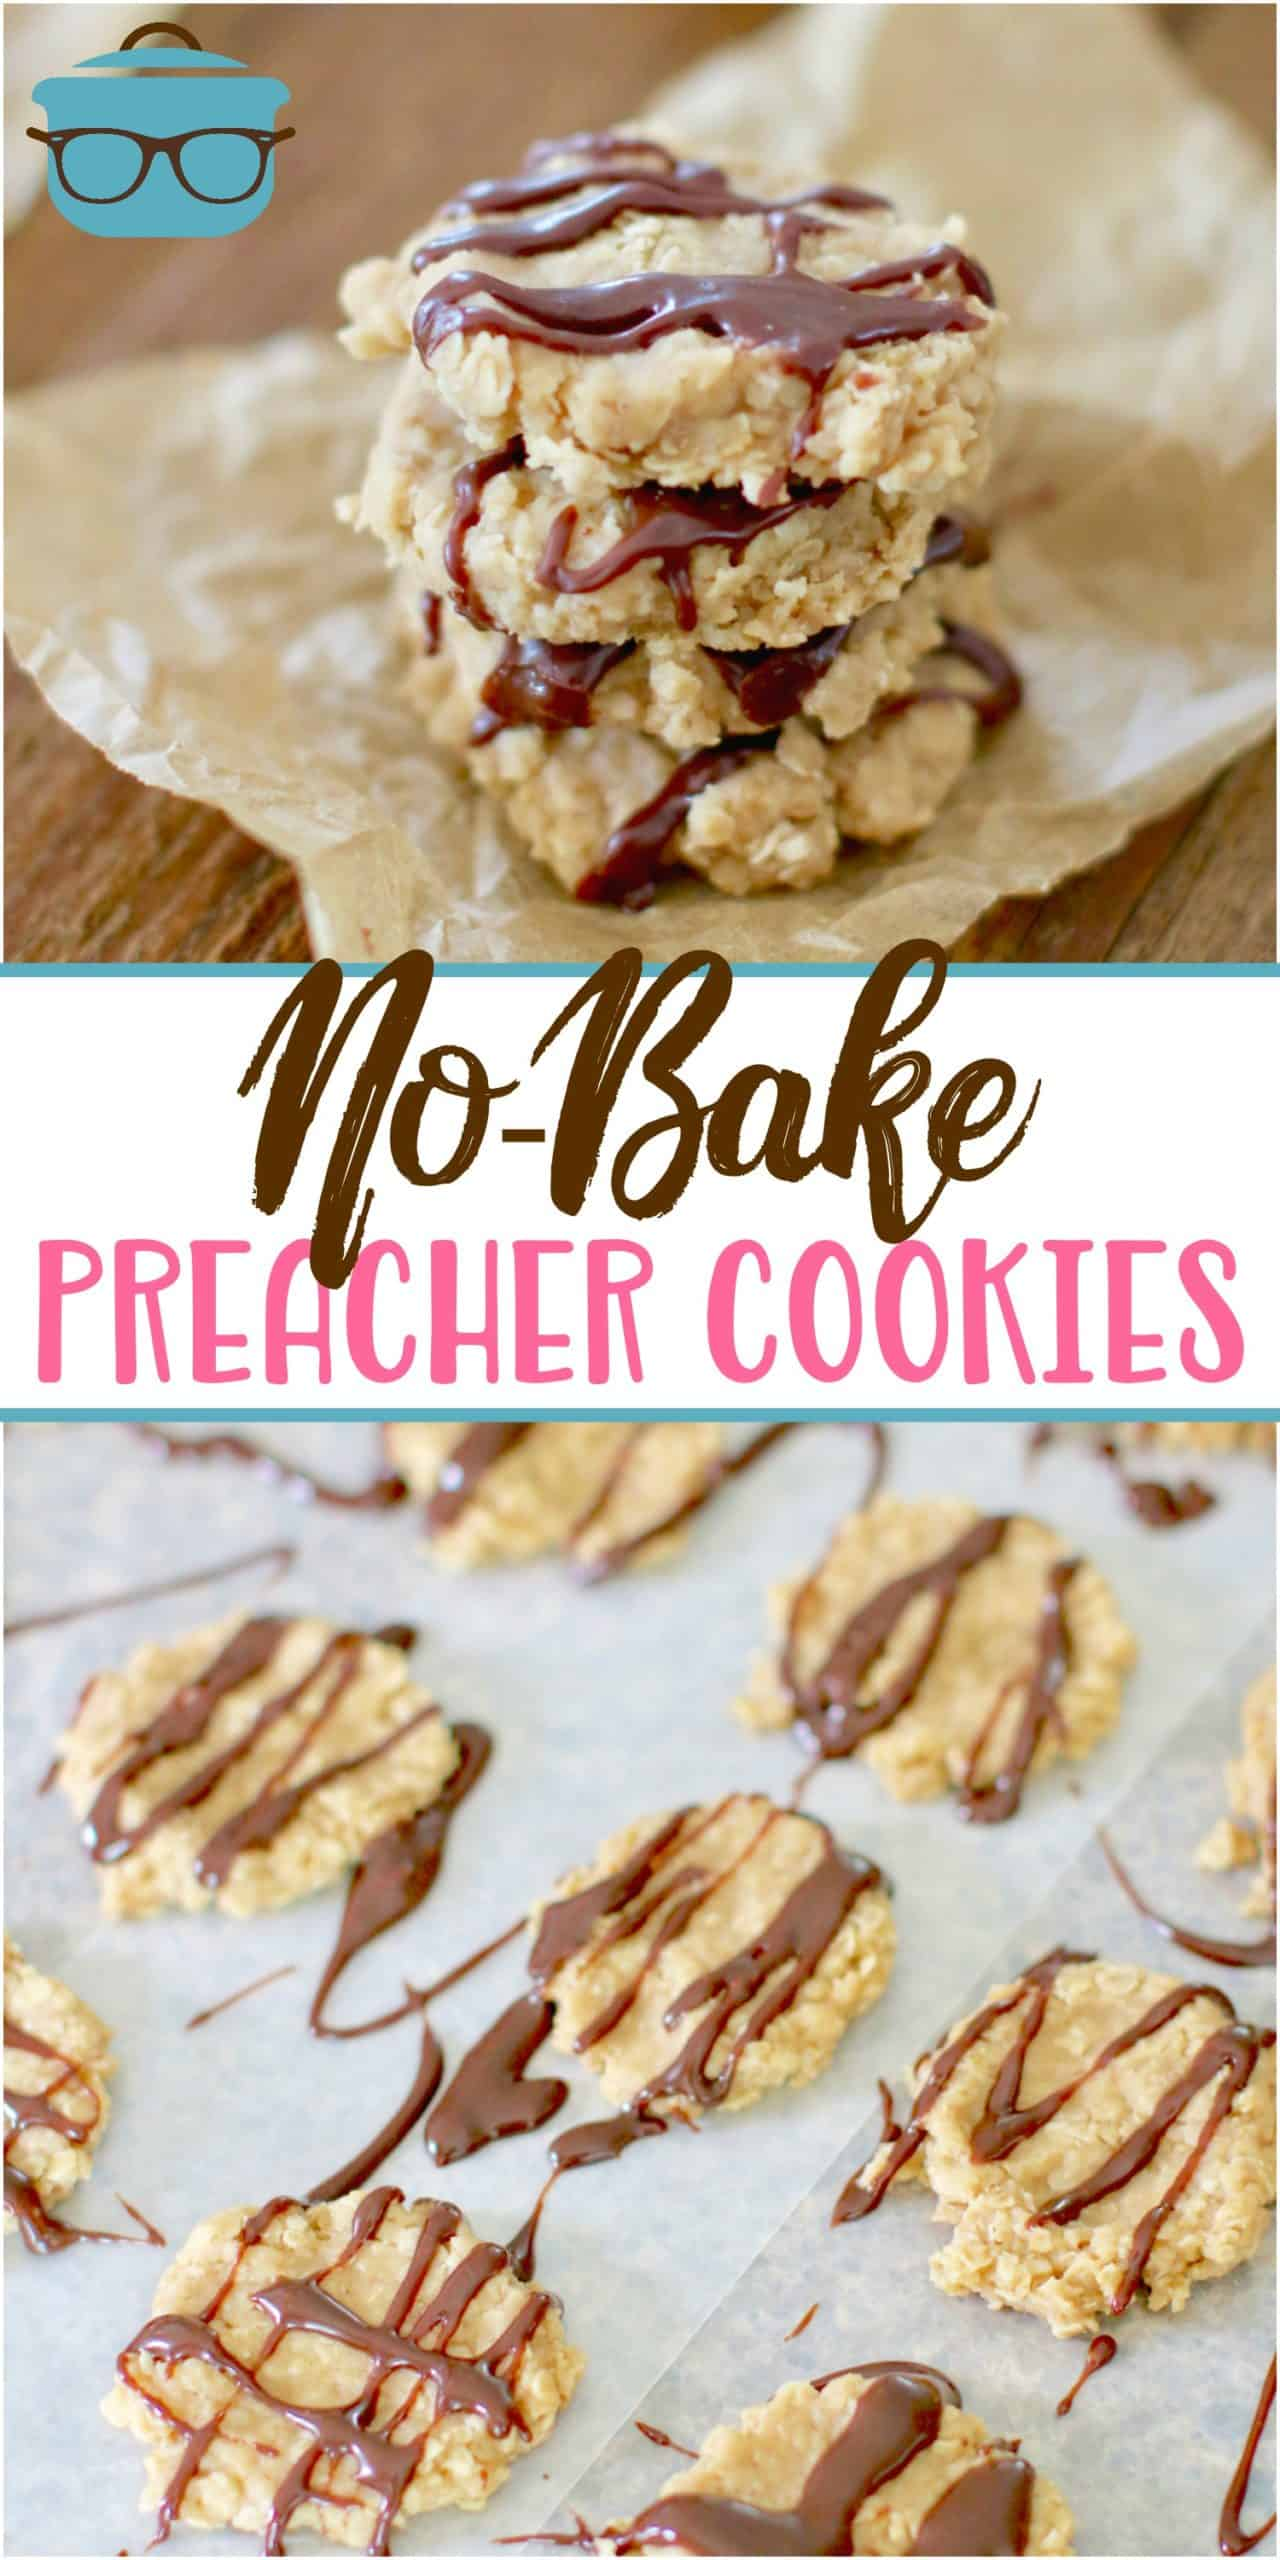 These No-Bake Preacher Cookies get their name from being a fast, sweet treat to make when you see the preacher coming!